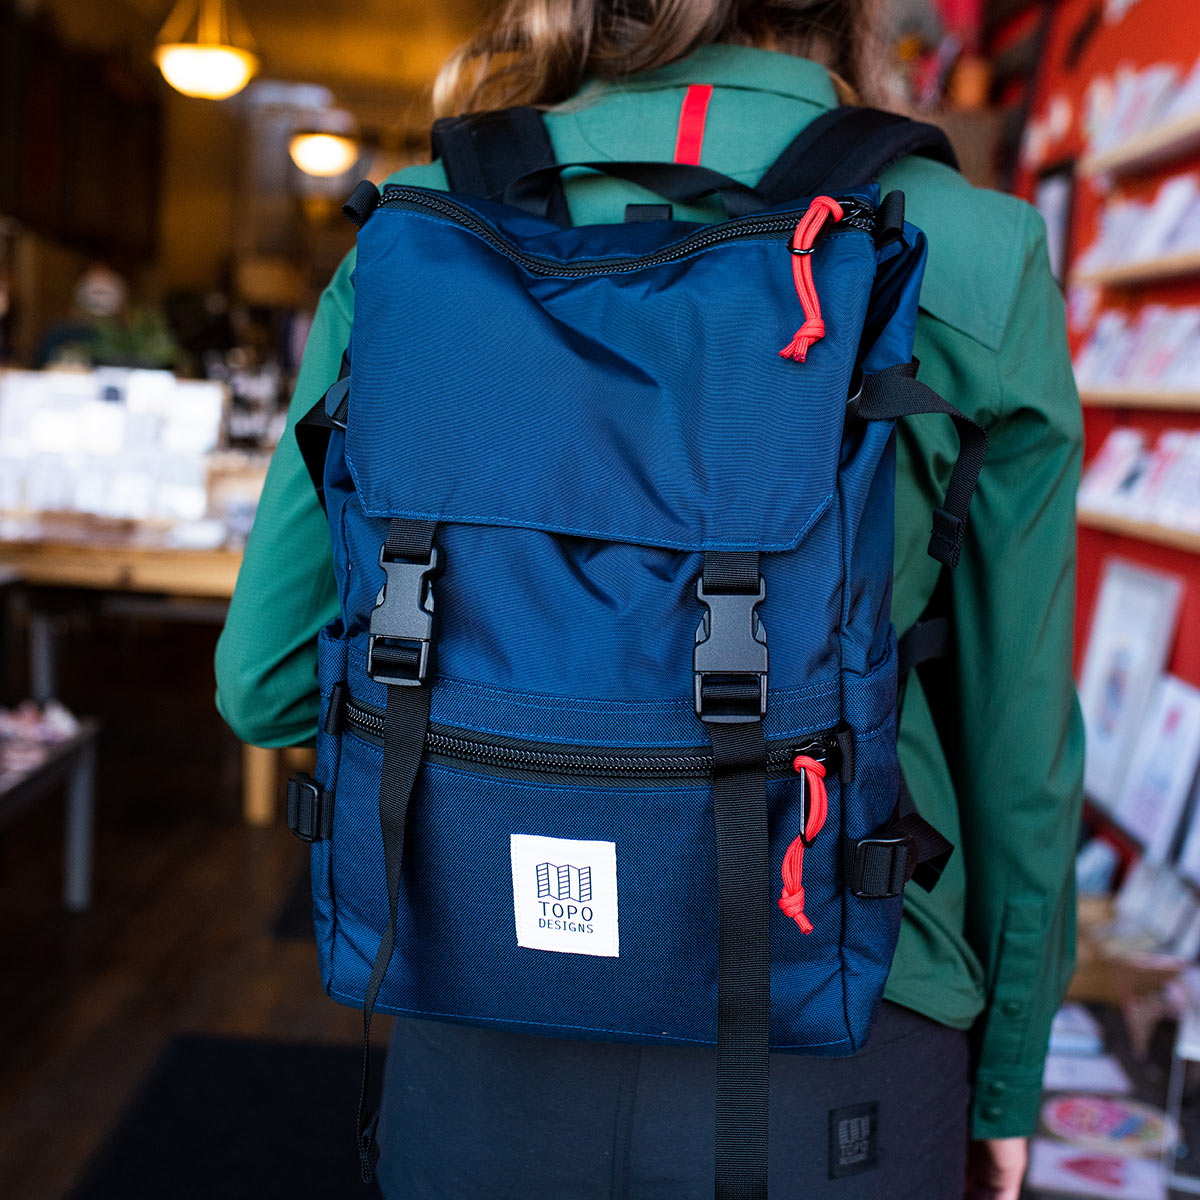 Topo Designs Rover Pack Classic Navy, timeless backpack with great functionalities